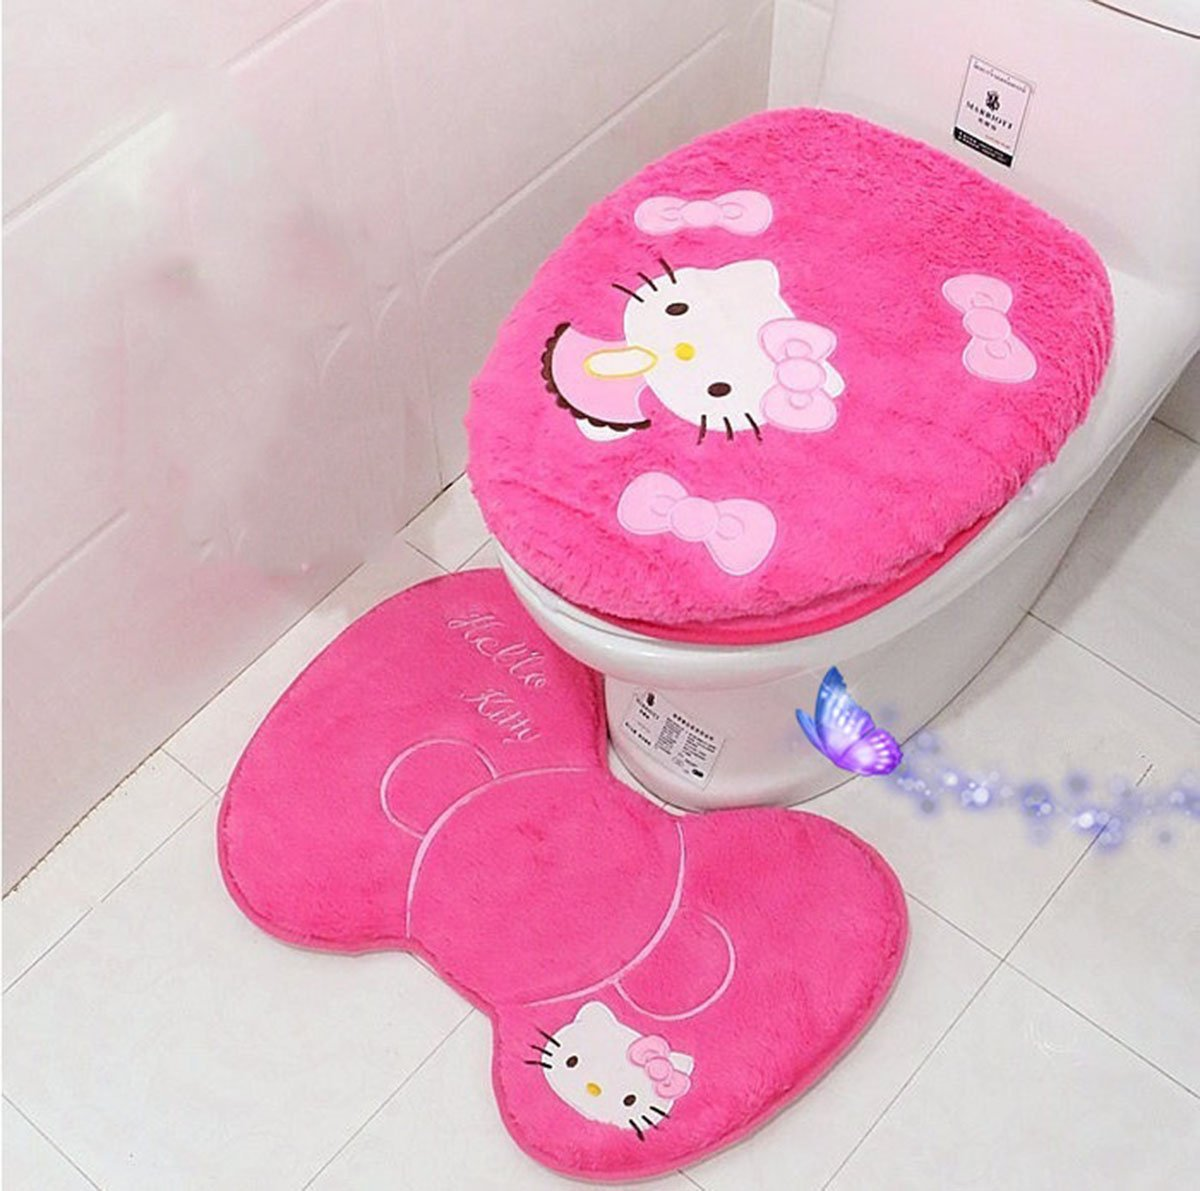 Ikeelife Cute Hello Kitty Bathroom Pedestal Mat Cotton Non Slip Bath Mat Toilet Contour Rug, Closestool Lid Cover,Seat Cushion,Tissue Box 4PCS Set Pink Se4 Janeyer